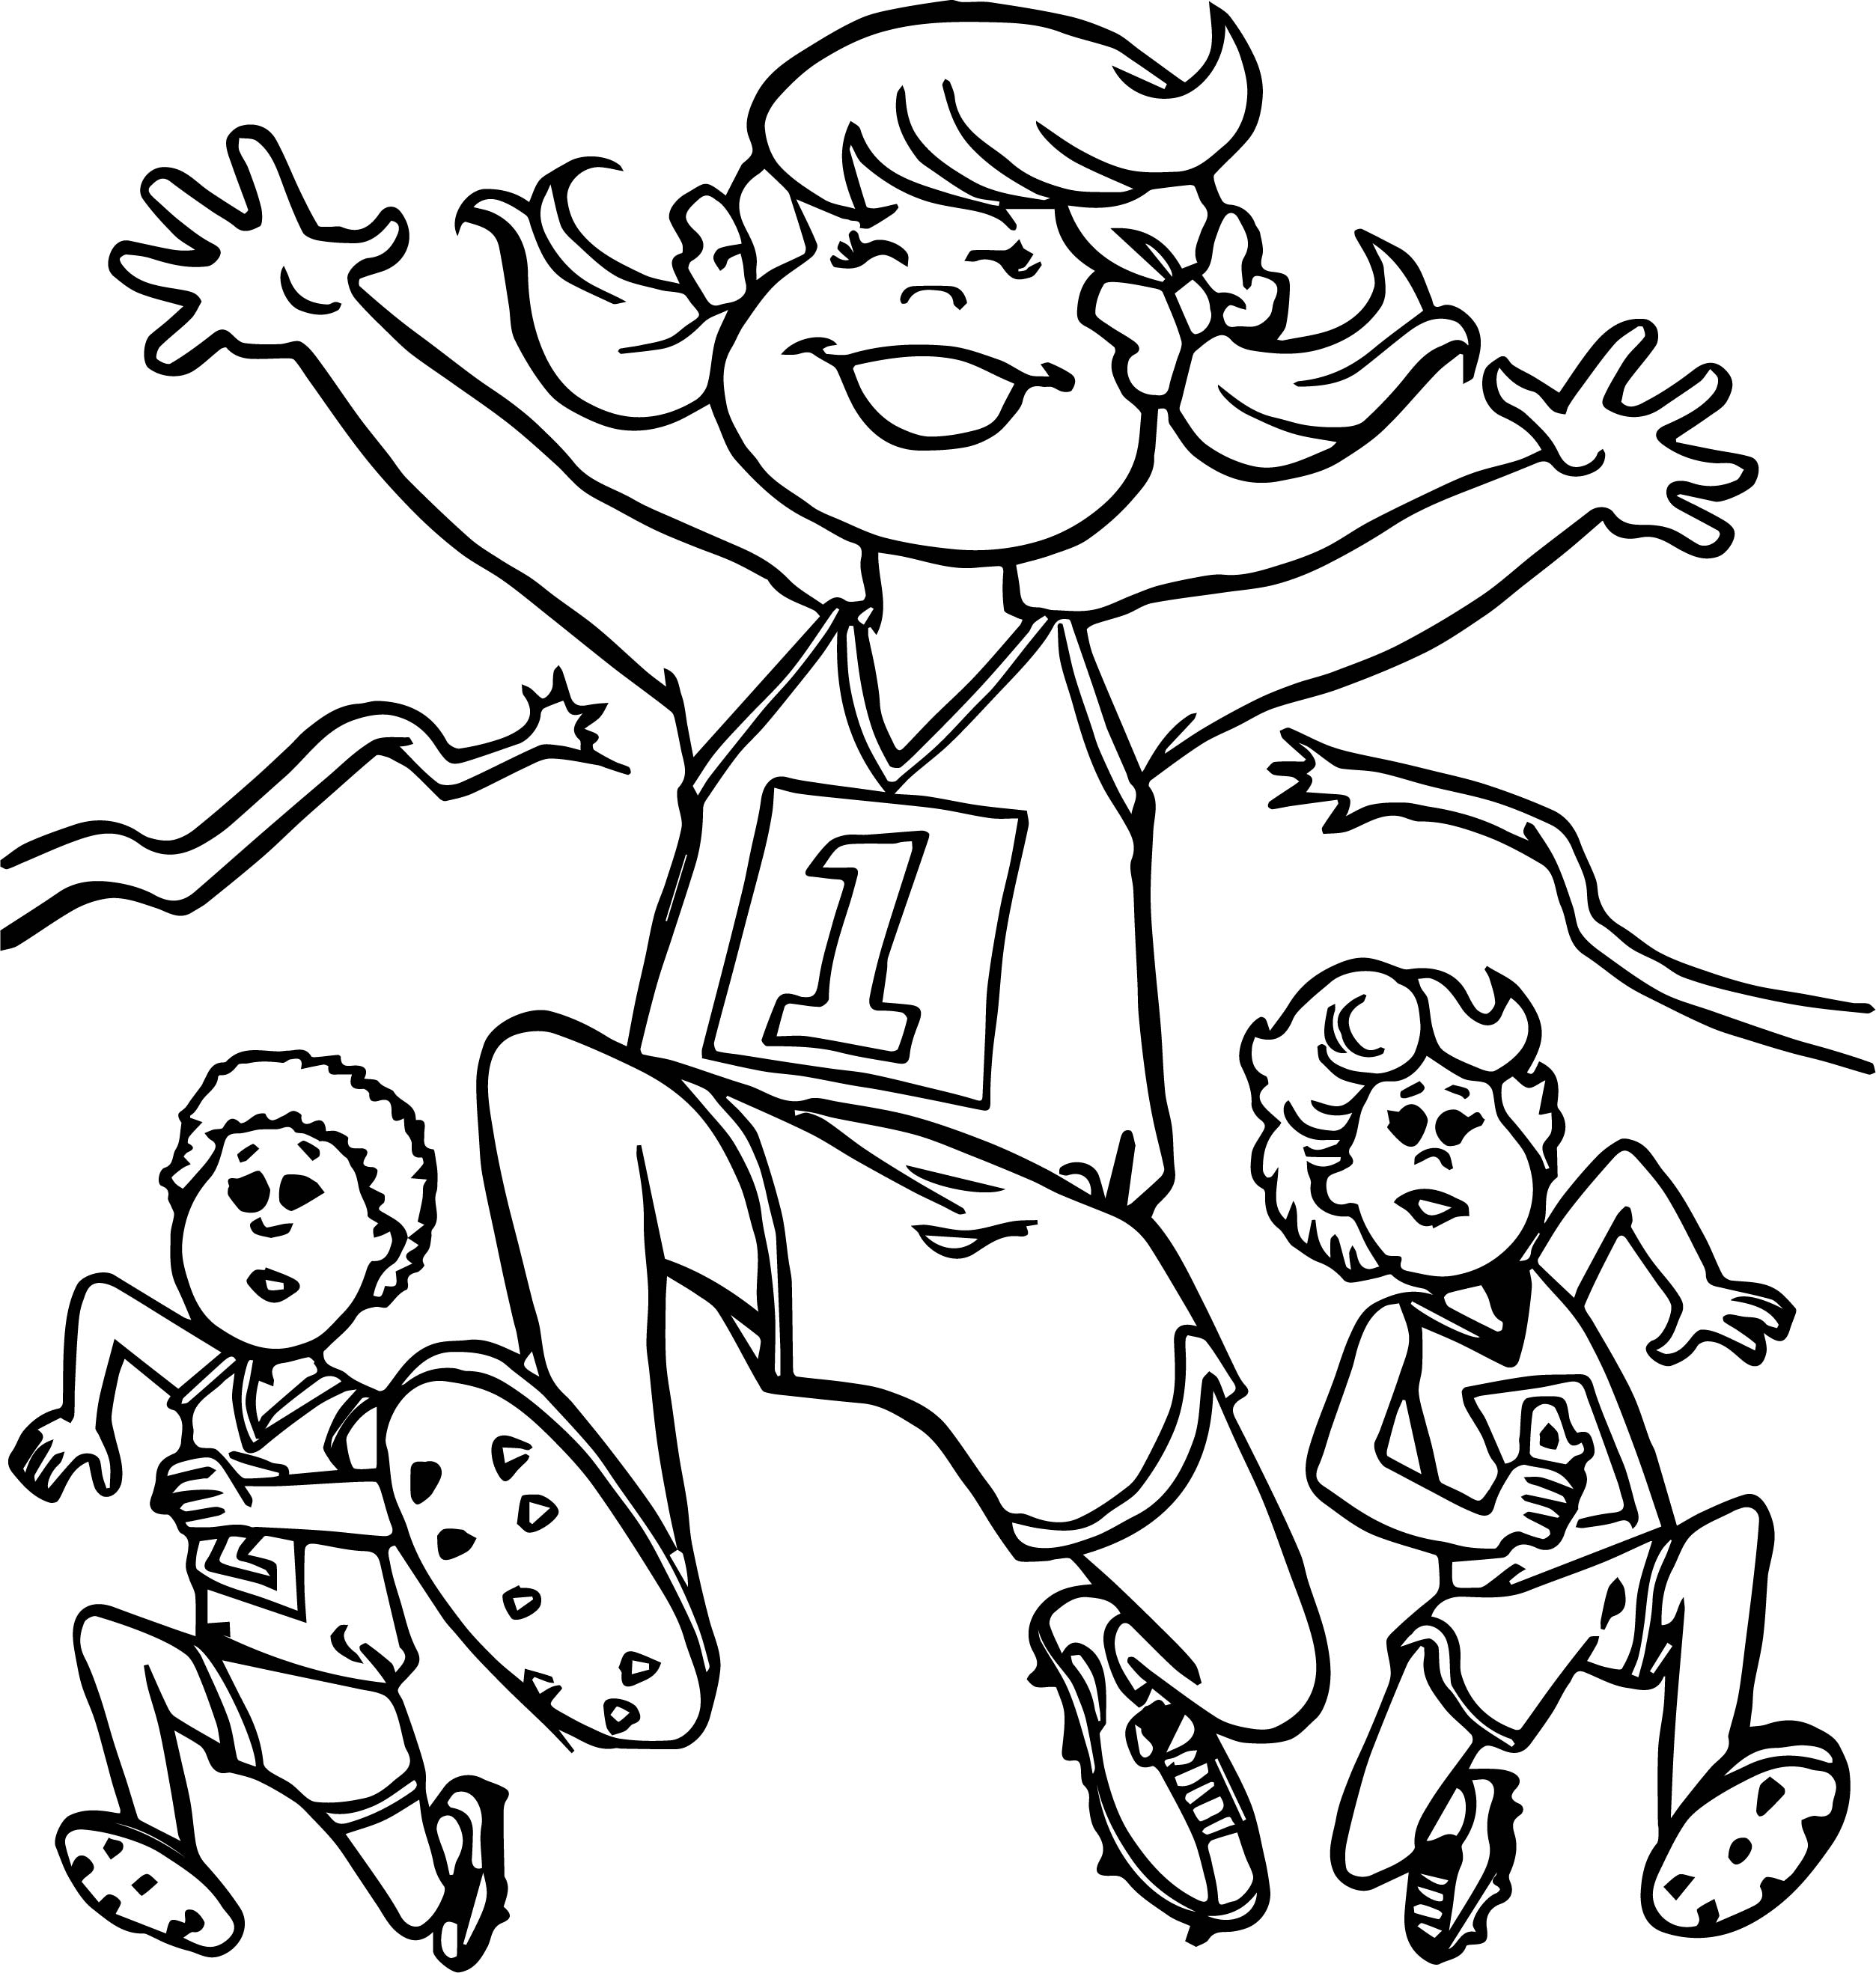 Best Friends Running Coloring Page